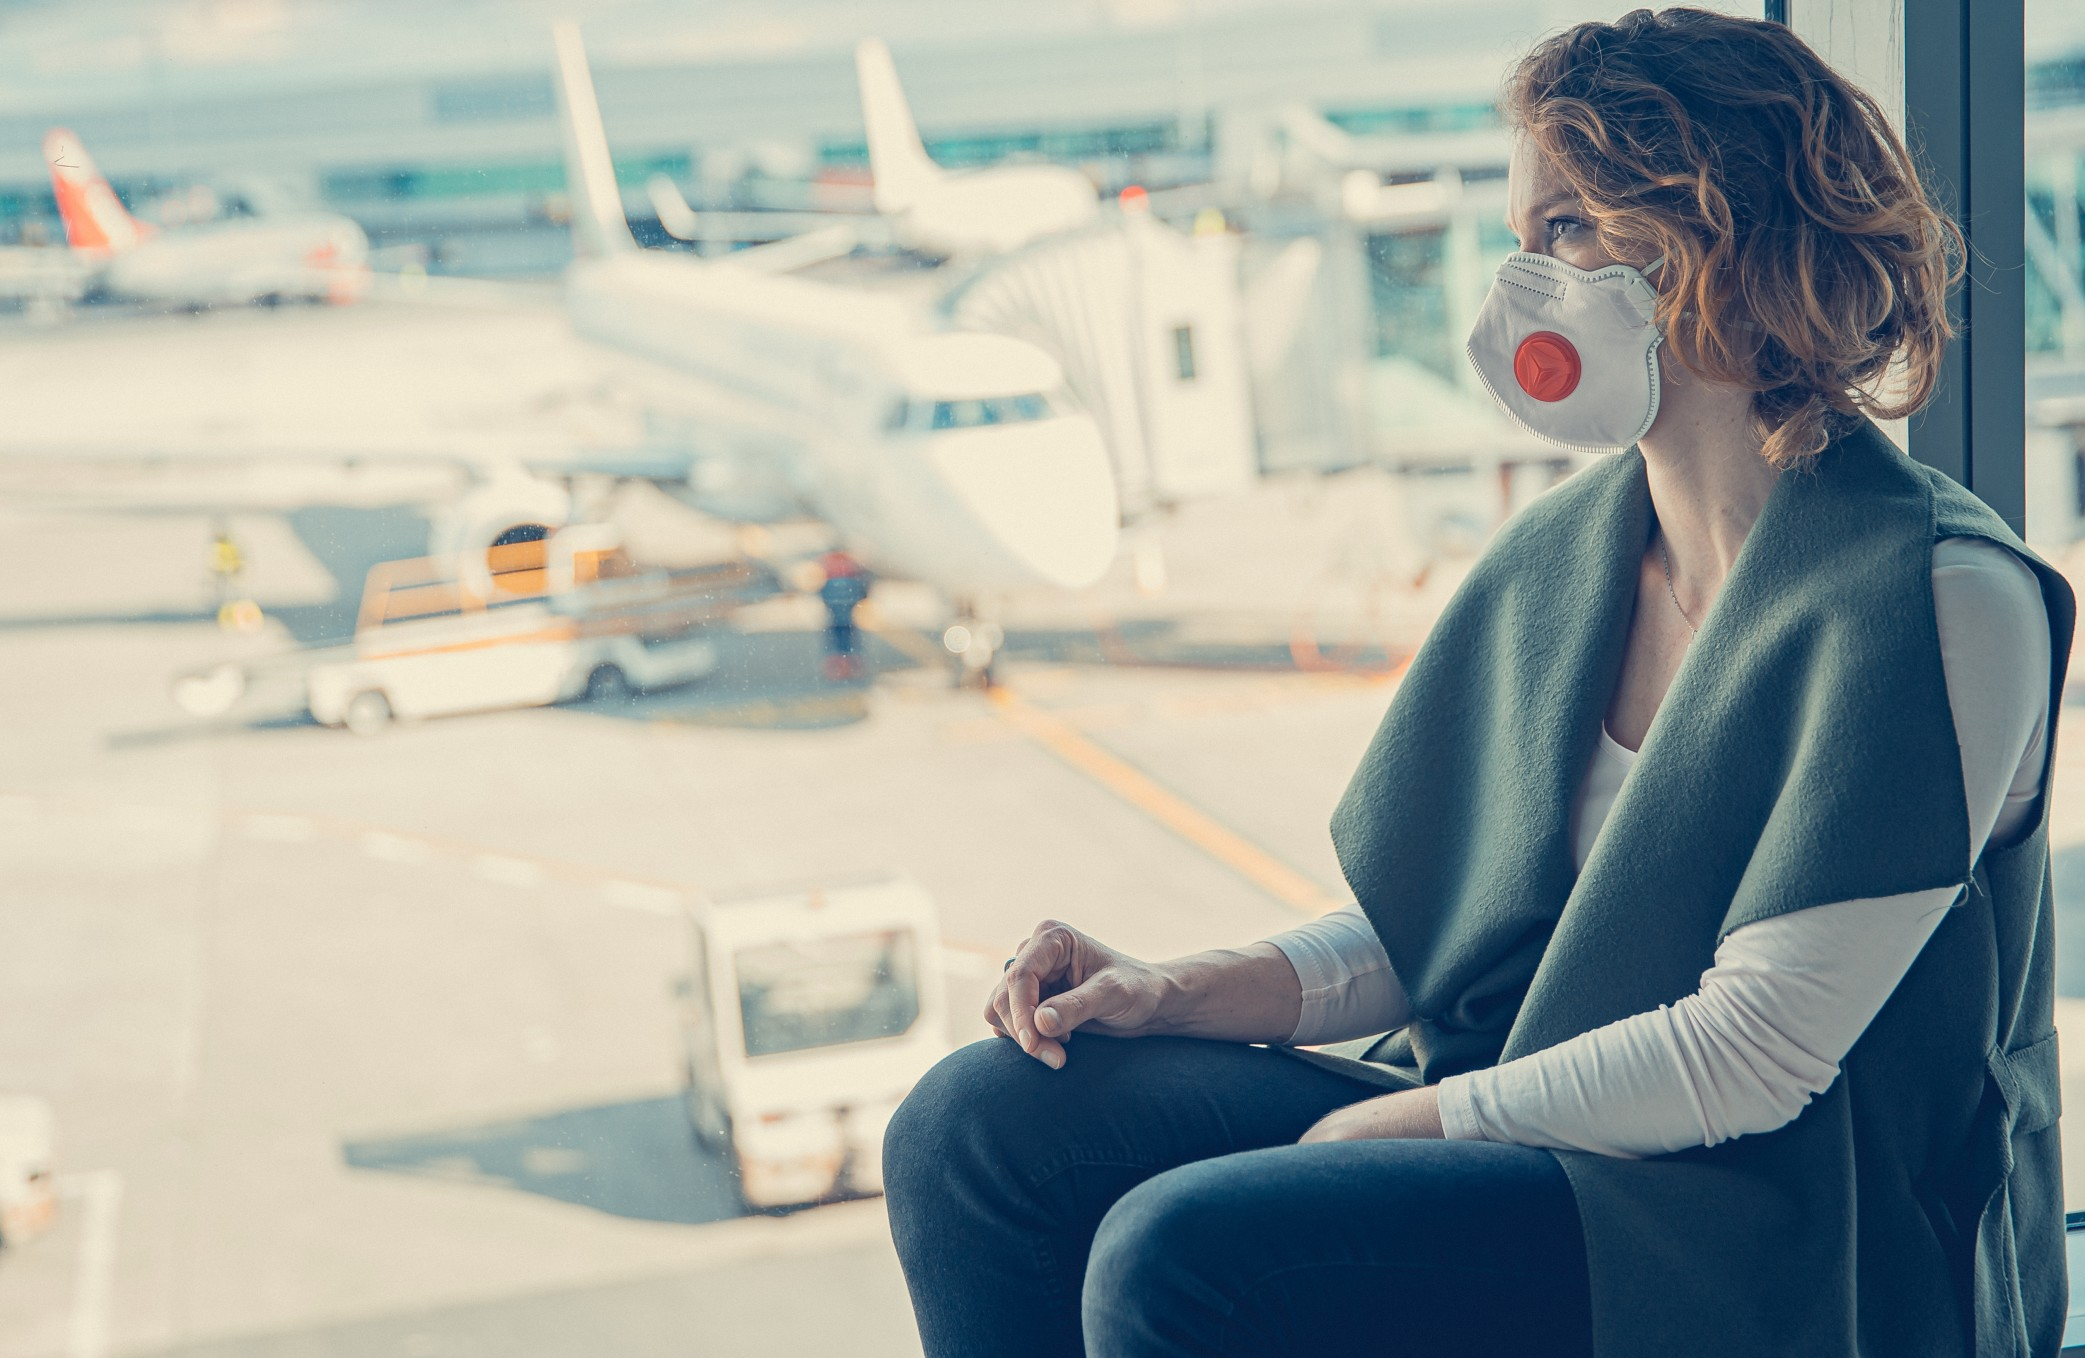 woman-with-a-medical-mask-on-her-face-at-the-airport_t20_ynrel2